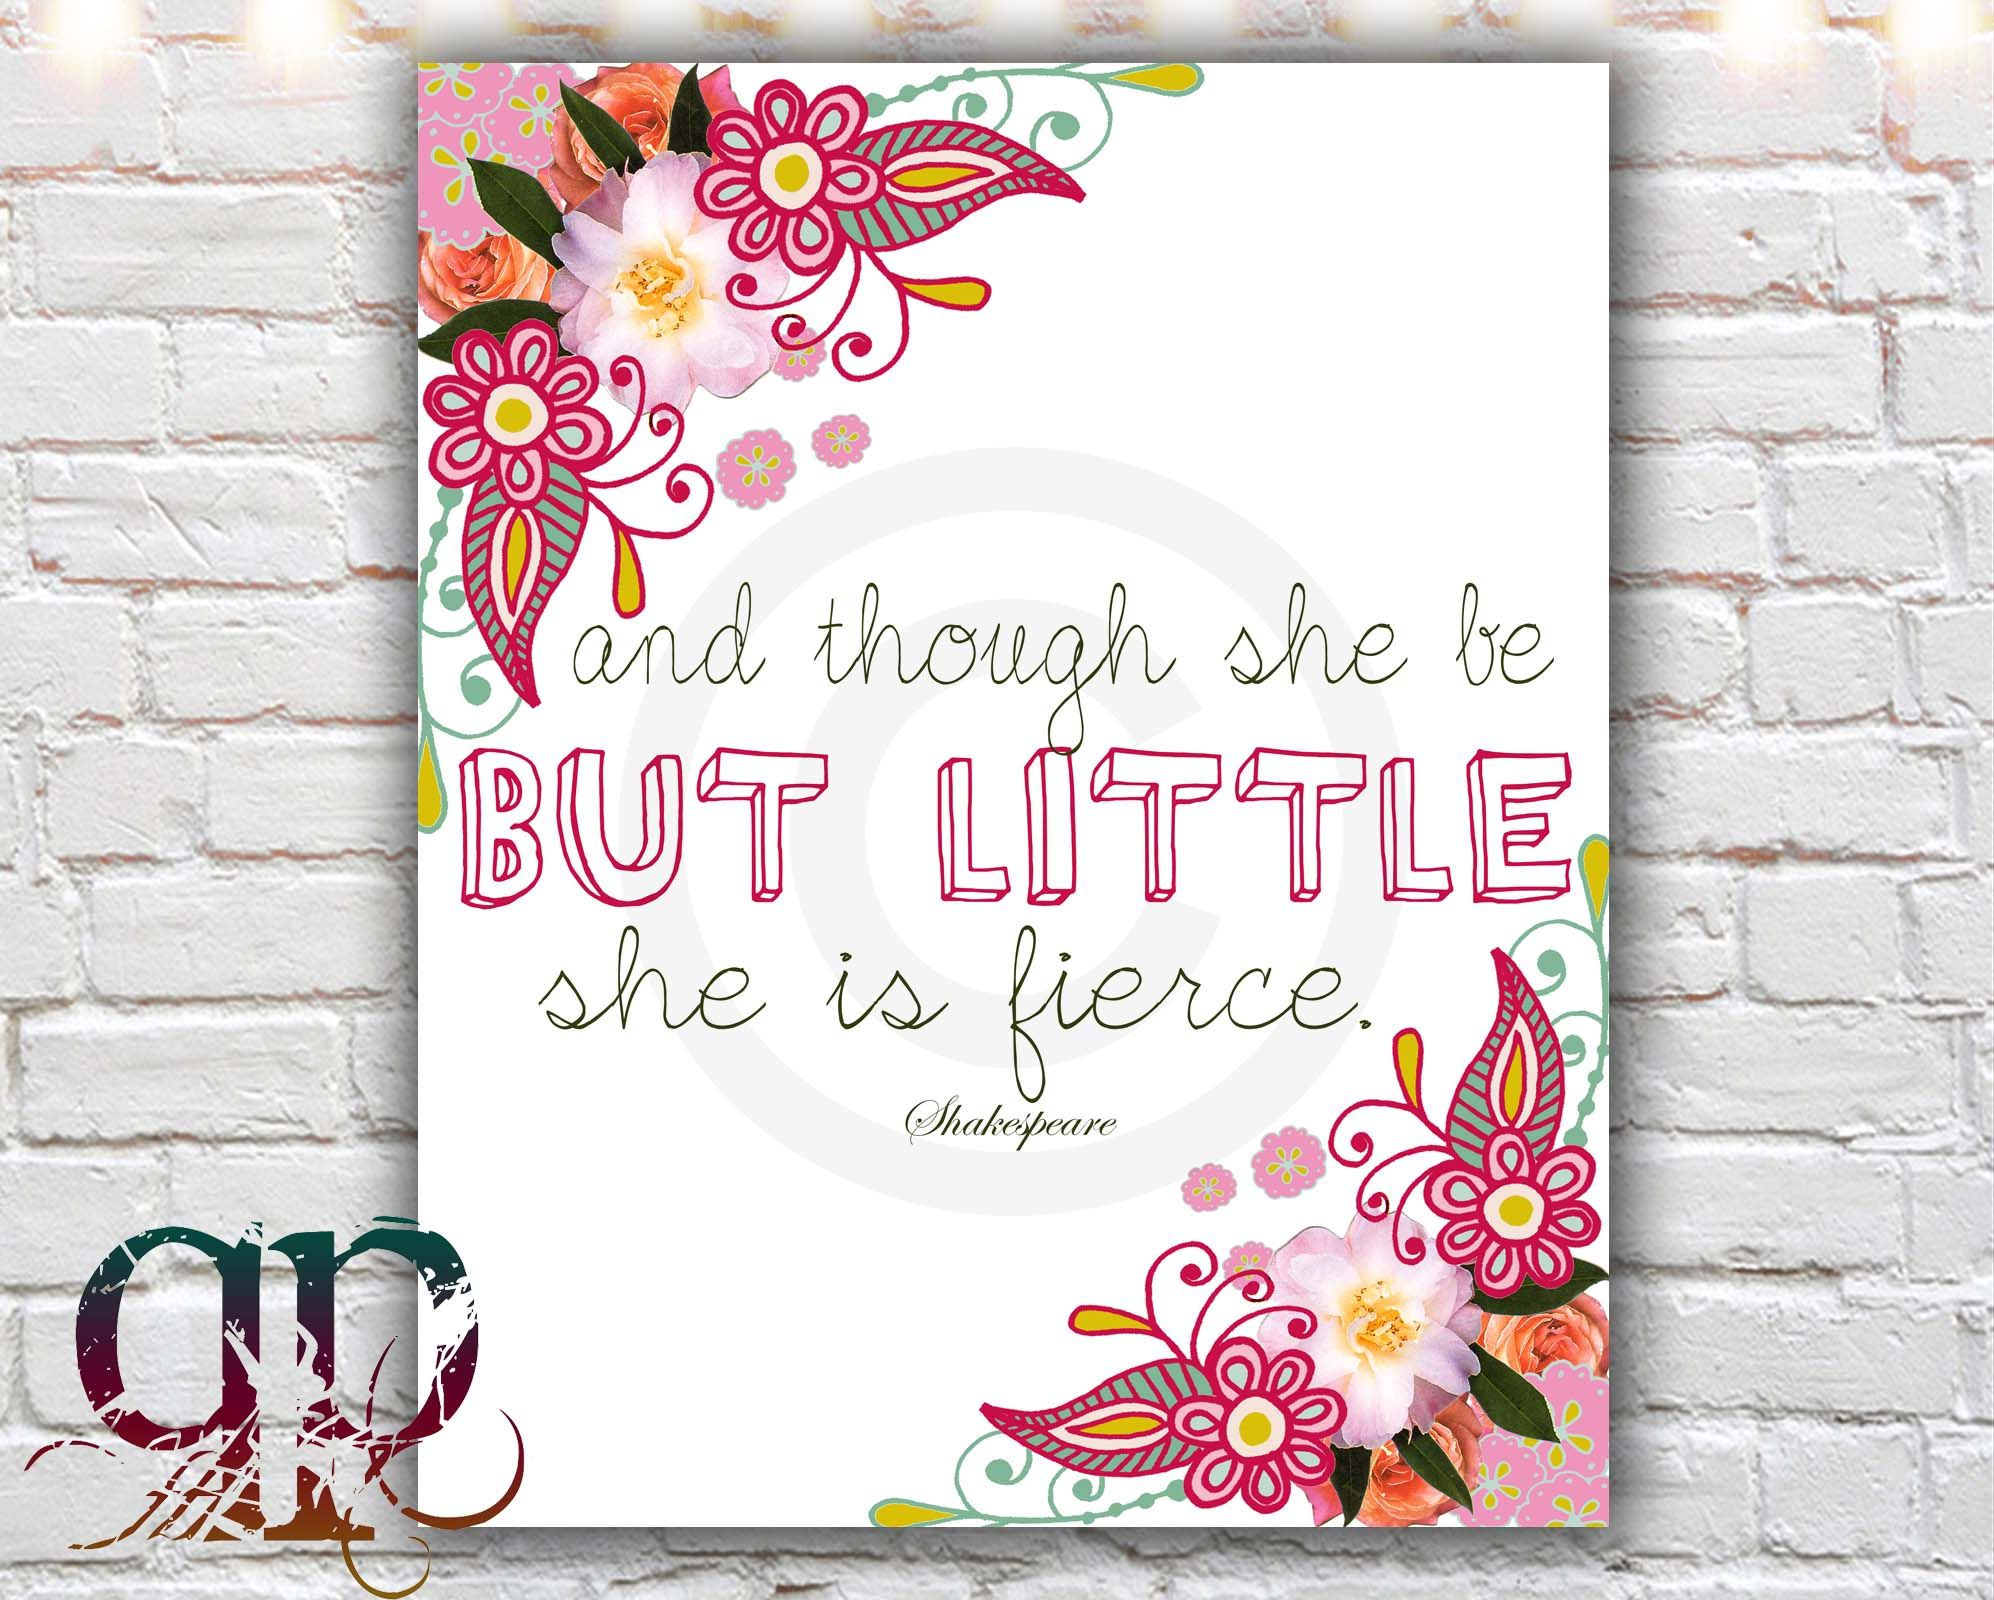 And Though She Be but Little She Is Fierce Wallpaper | She Is Fierce - 8 x 10 paper print, shakespeare quote print, and ...